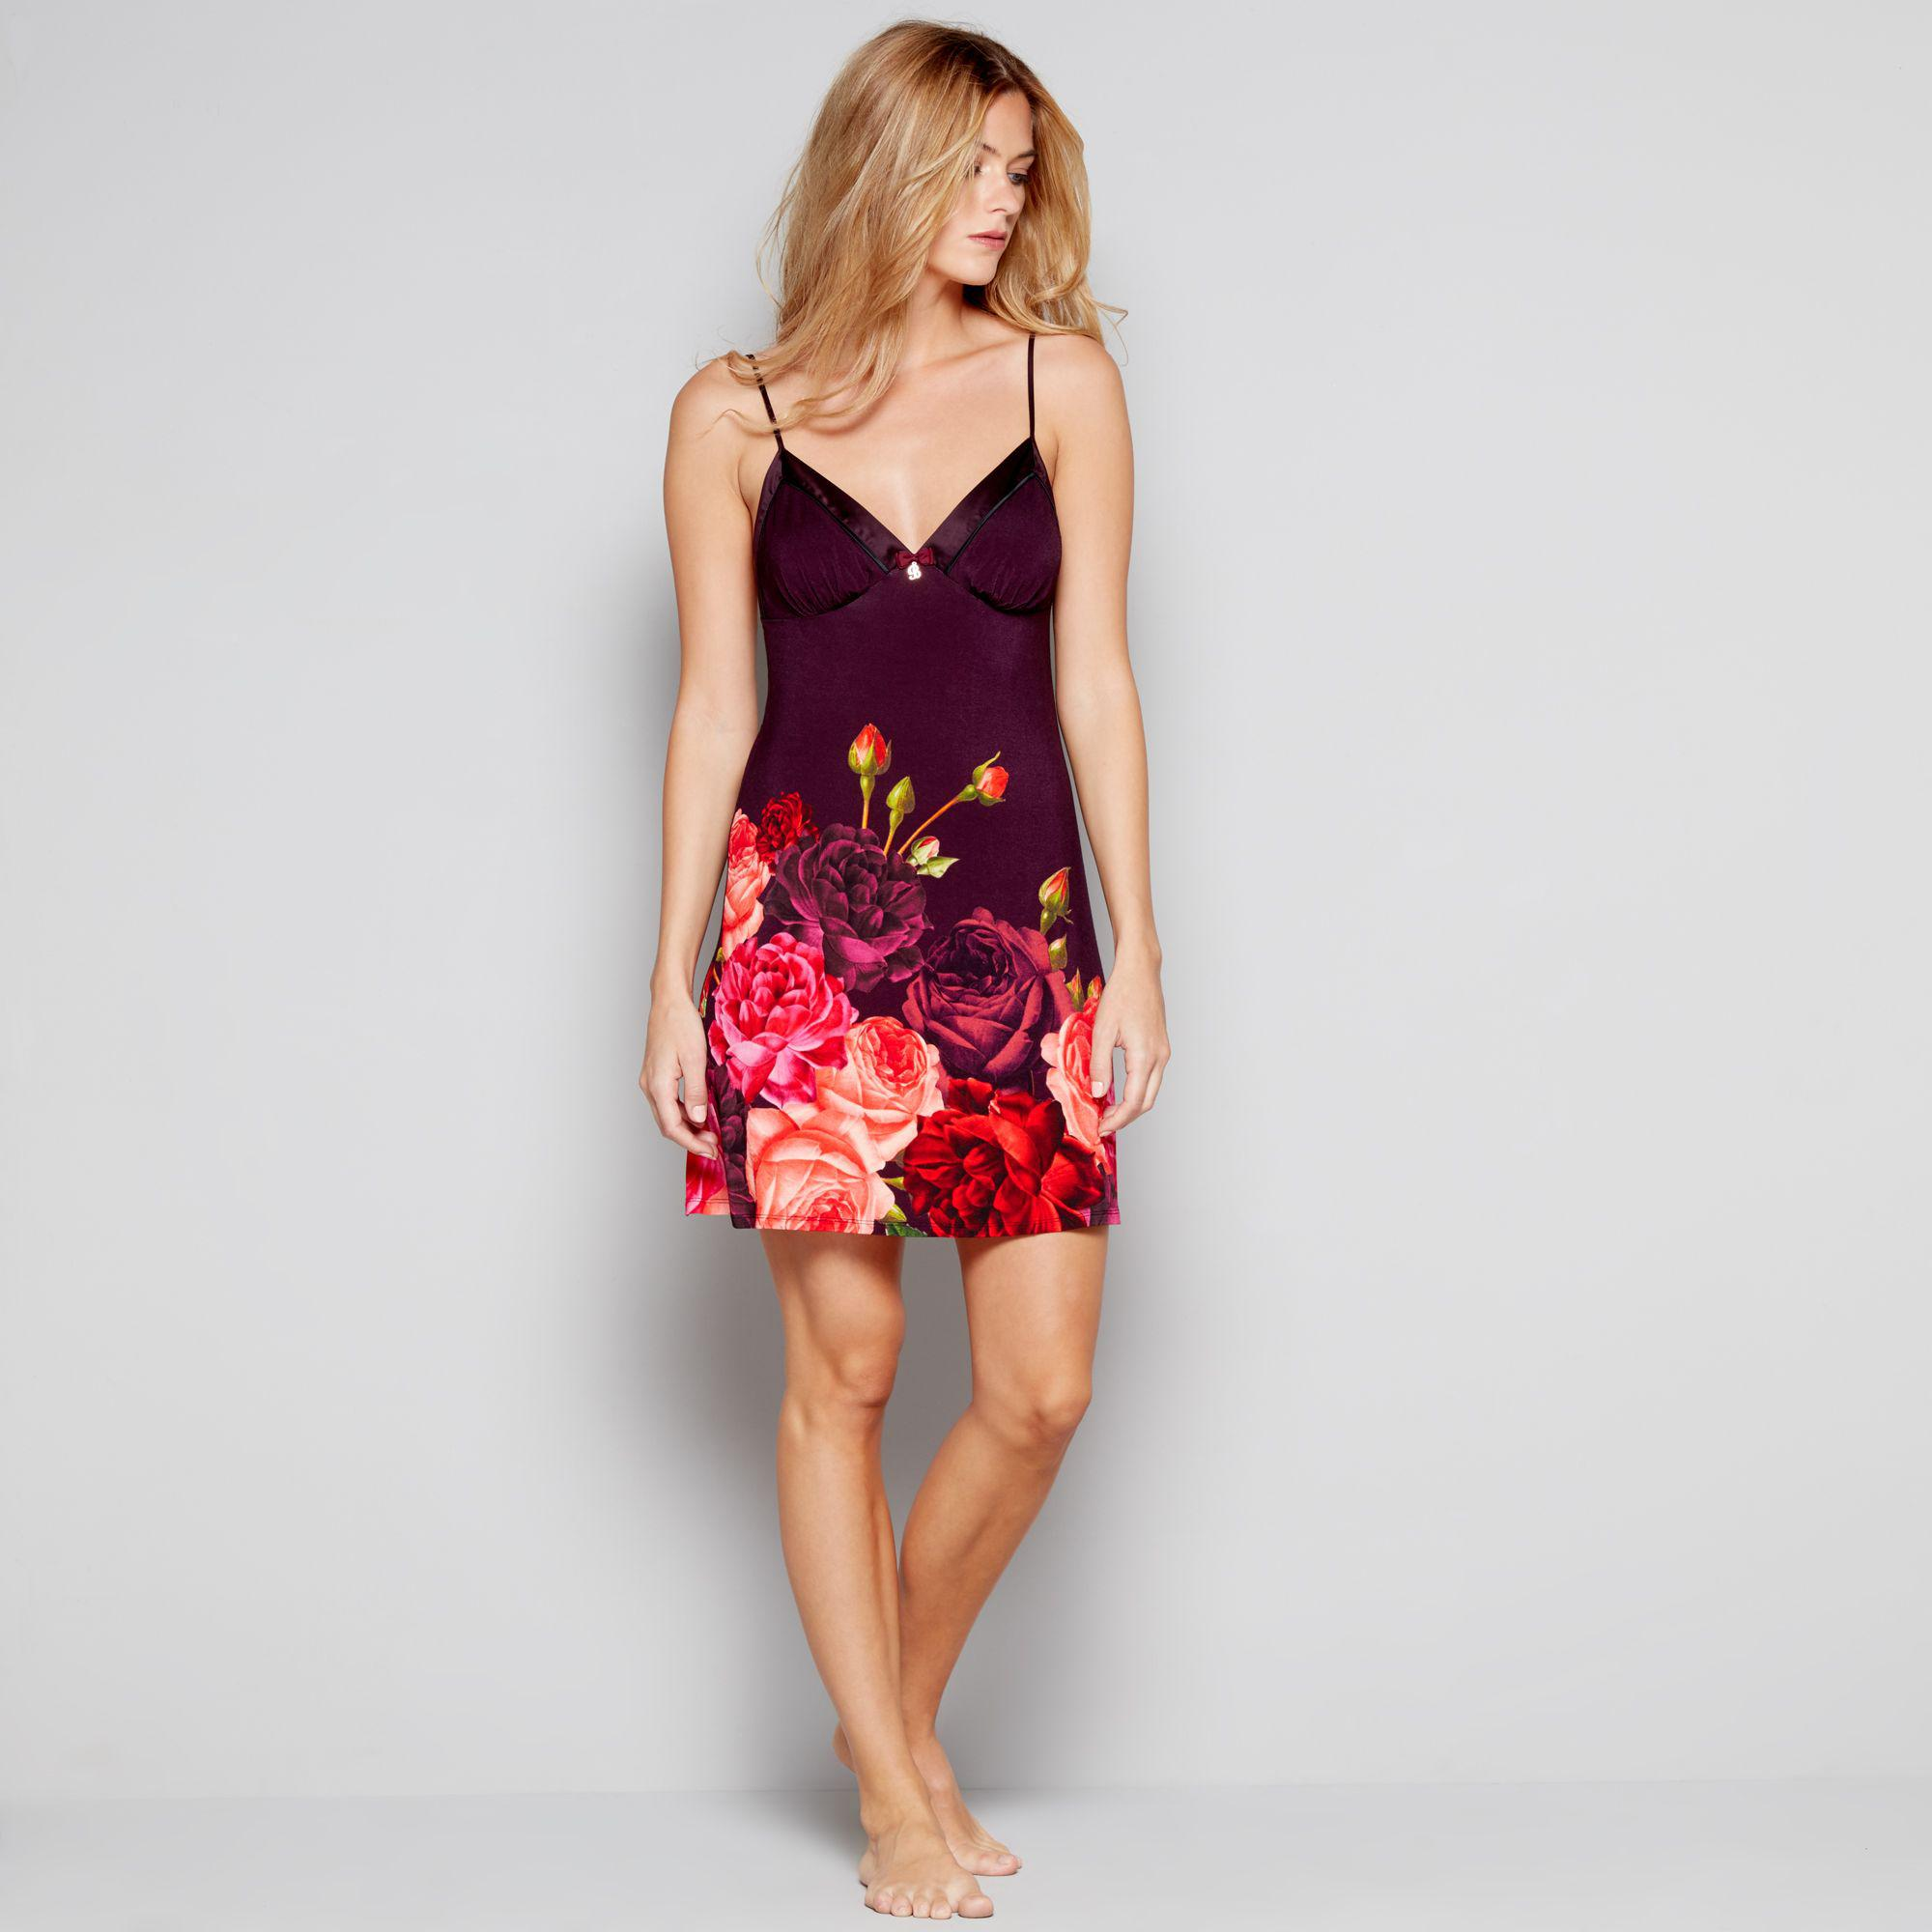 8e08f02f5 Ted Baker Purple Floral Print Satin Trim  juxtapose Rose  Chemise in ...